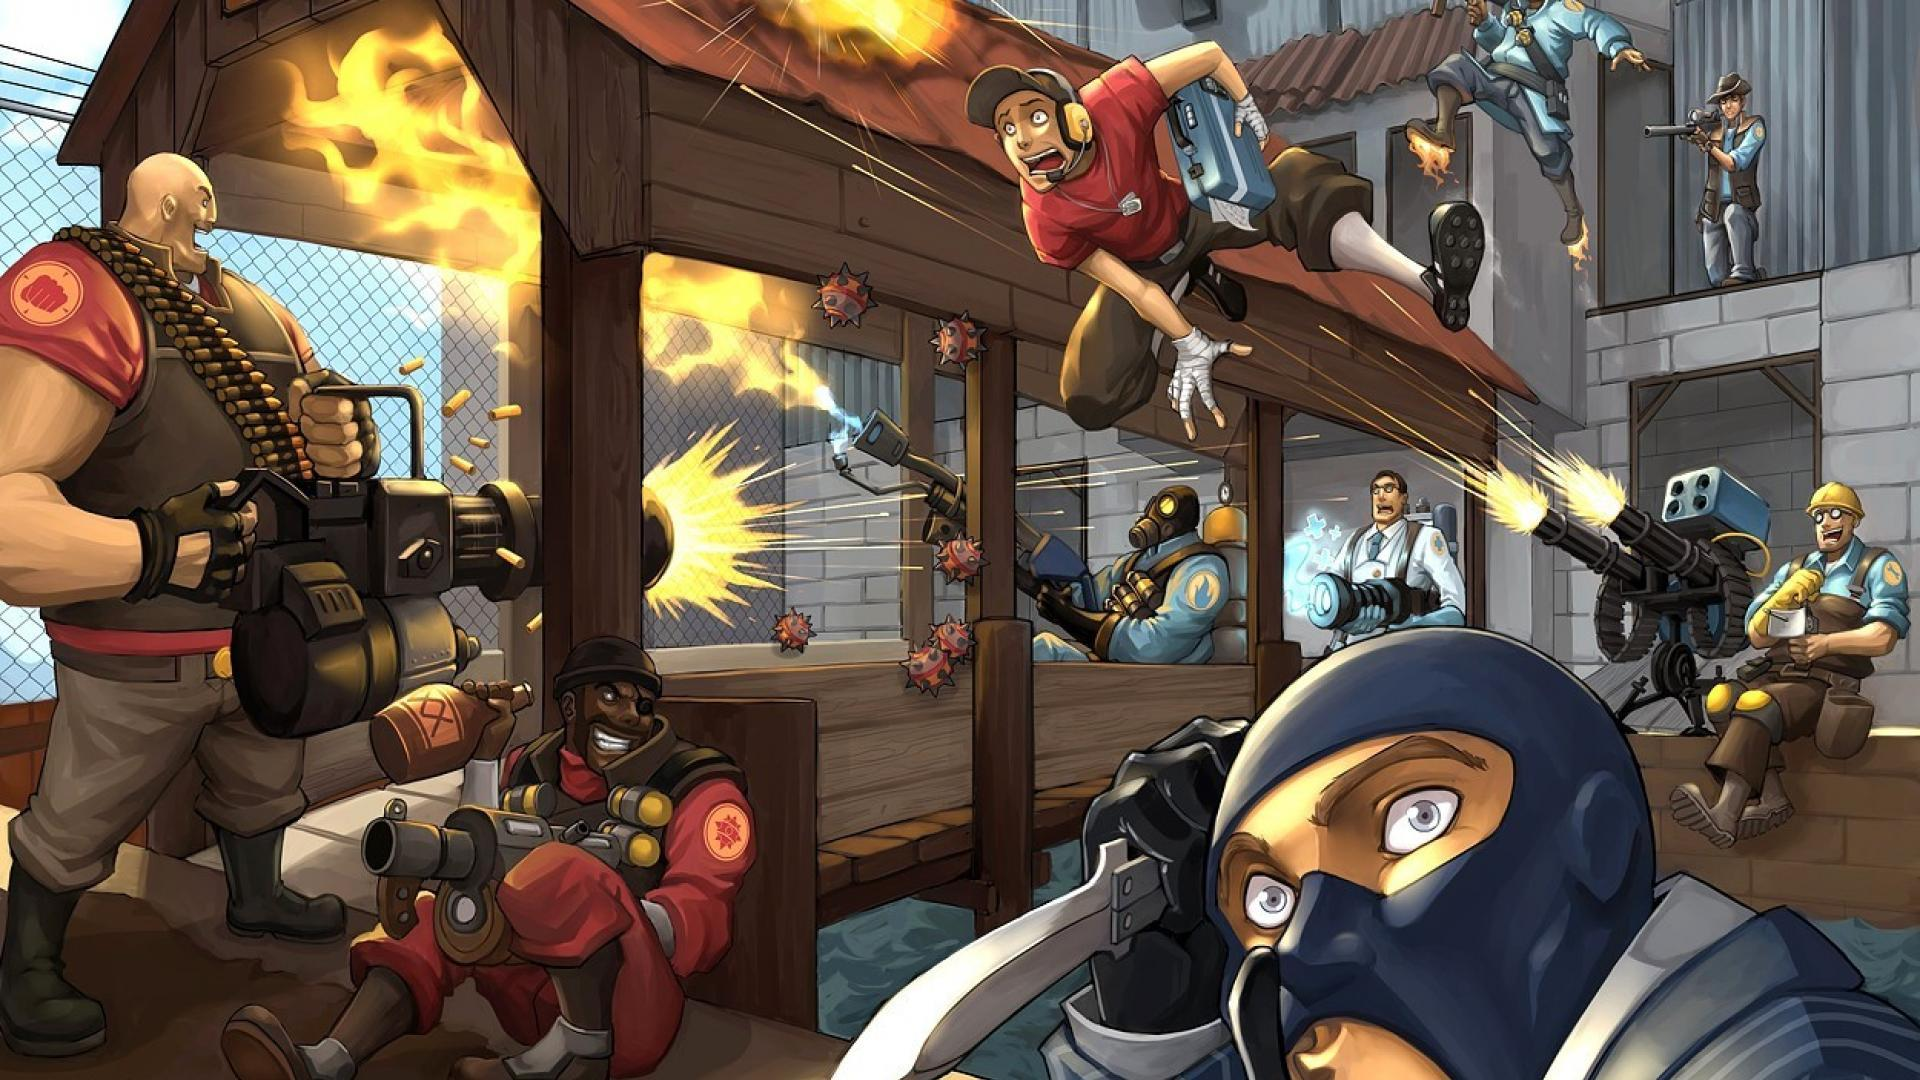 Team fortress 2 backgrounds wallpaper cave - Wallpaper game hd android ...